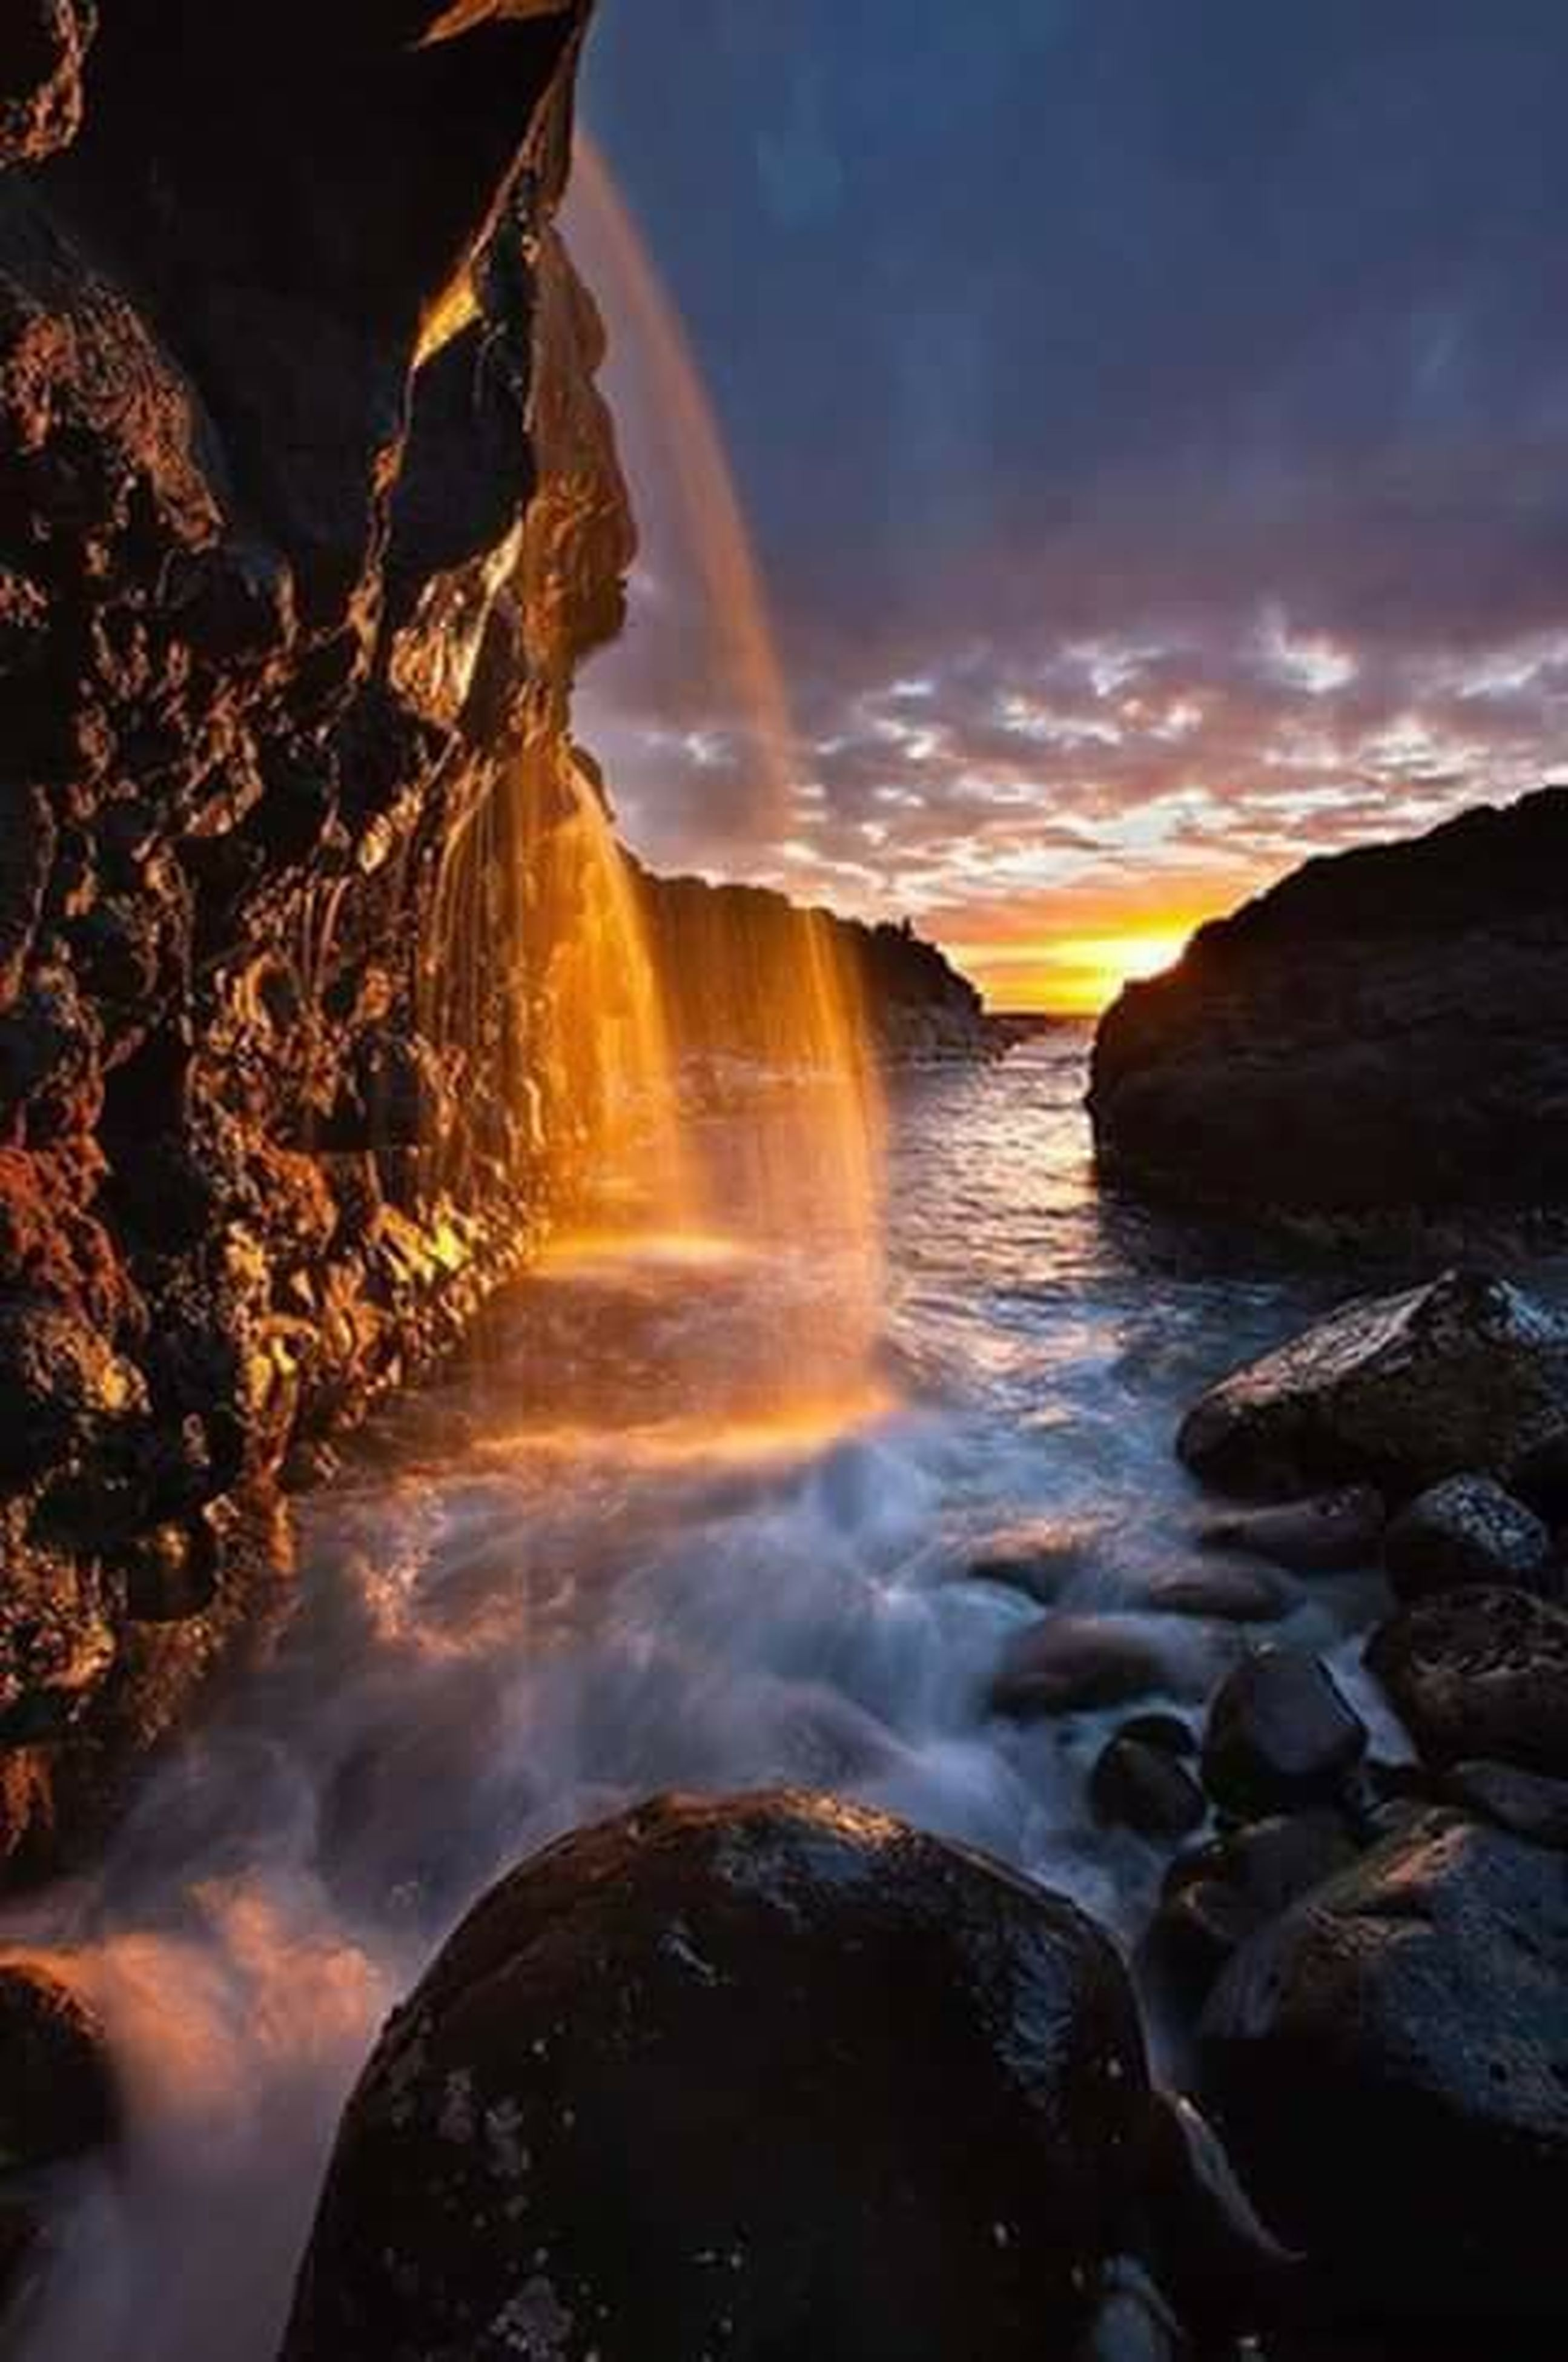 water, scenics, beauty in nature, tranquil scene, rock - object, sky, sunset, tranquility, nature, rock formation, idyllic, cloud - sky, rock, sea, non-urban scene, cloud, shore, outdoors, reflection, orange color